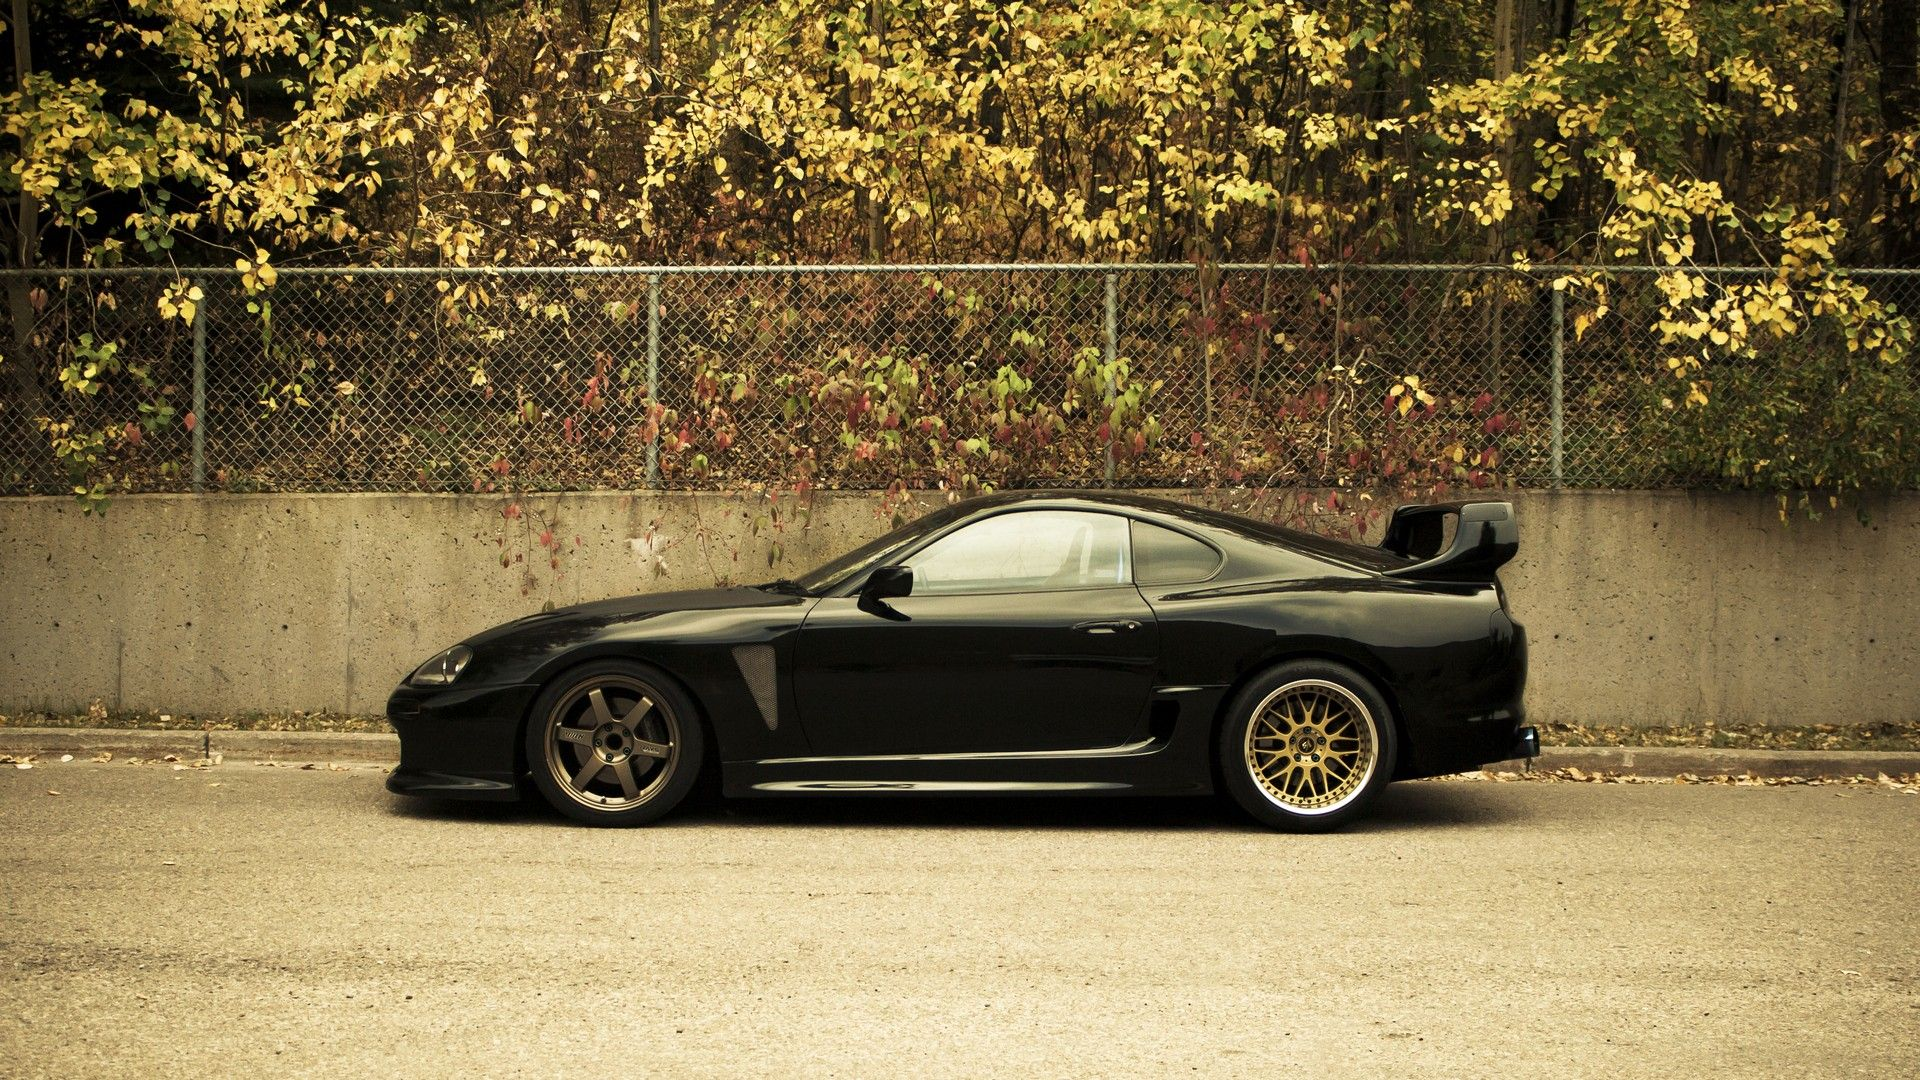 Toyota supra shining black hd wallpaper in full hd from the cars category